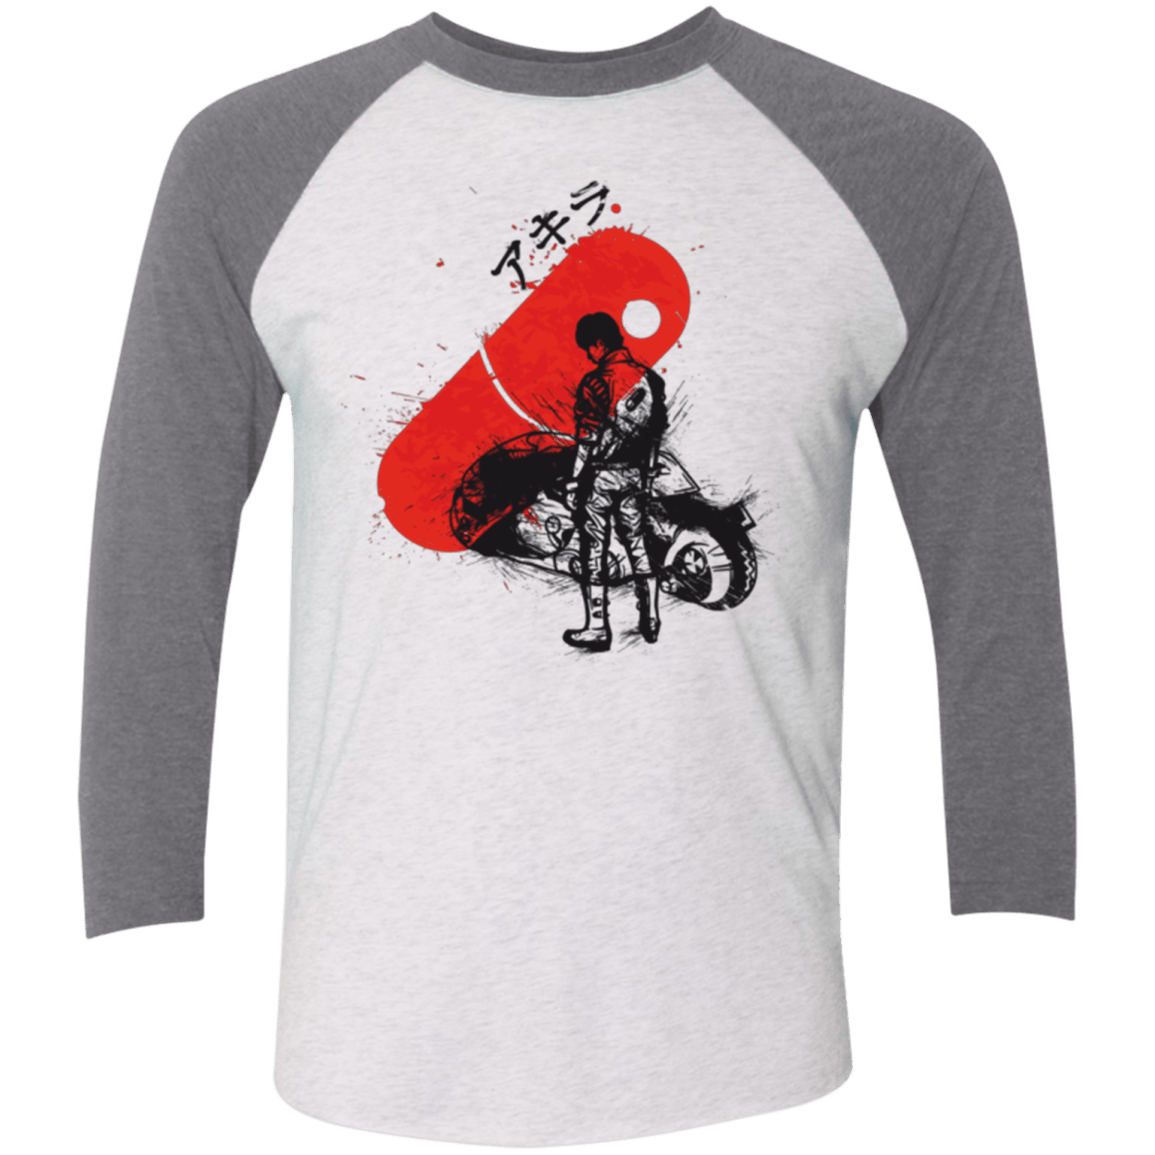 T-Shirts Heather White/Premium Heather / X-Small RED SUN AKIRA Men's Triblend 3/4 Sleeve